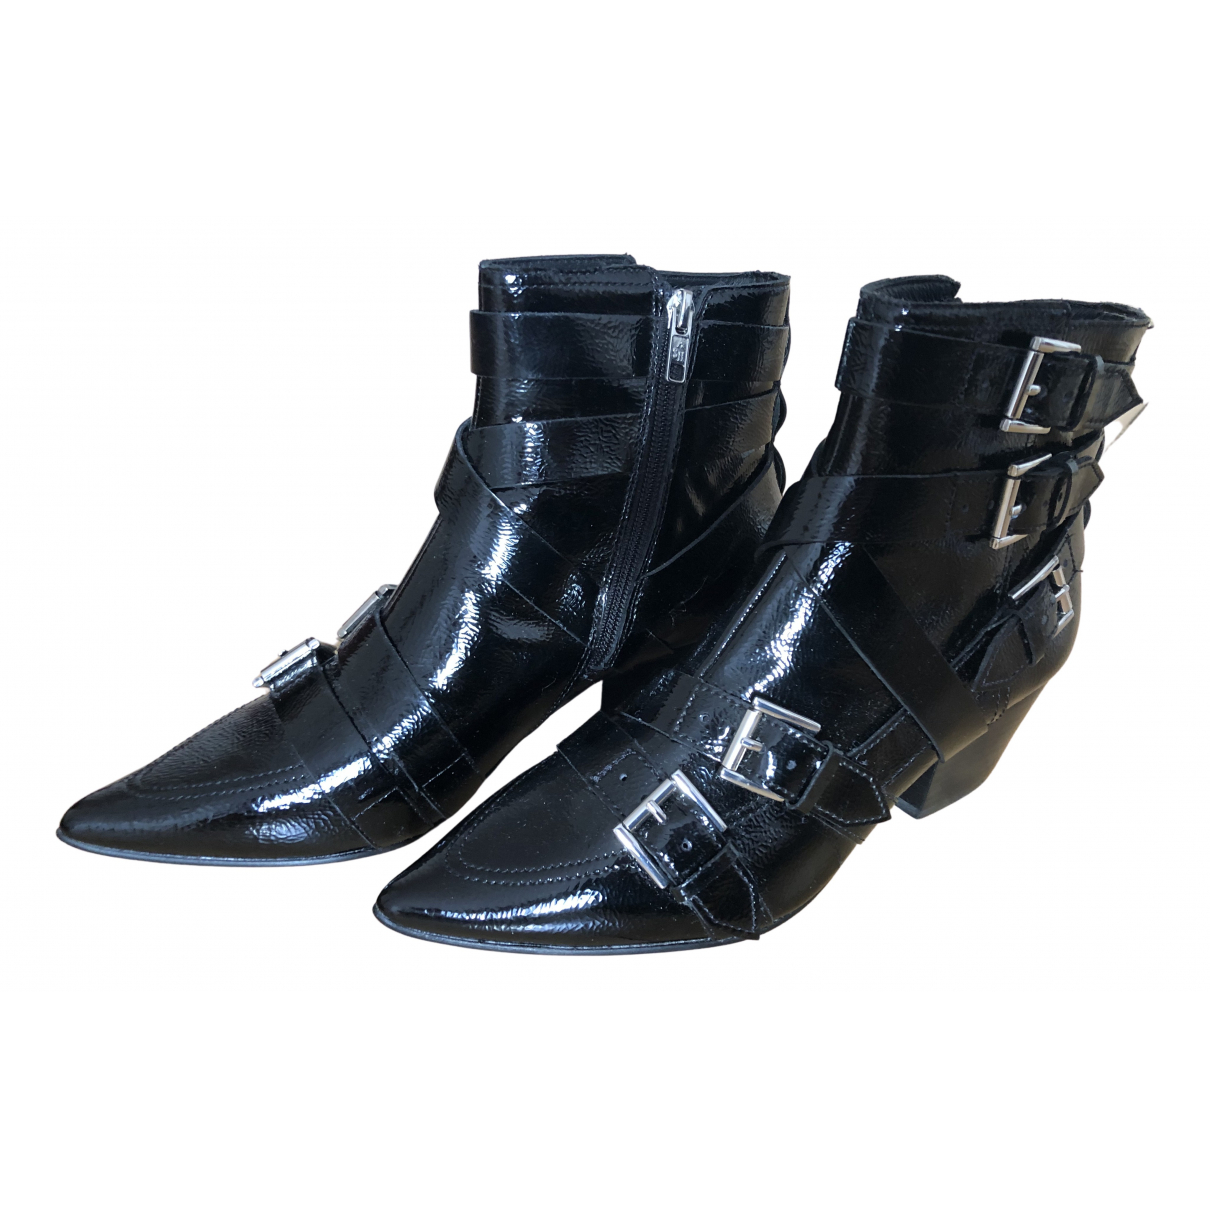 Ash N Black Patent leather Ankle boots for Women 39 EU